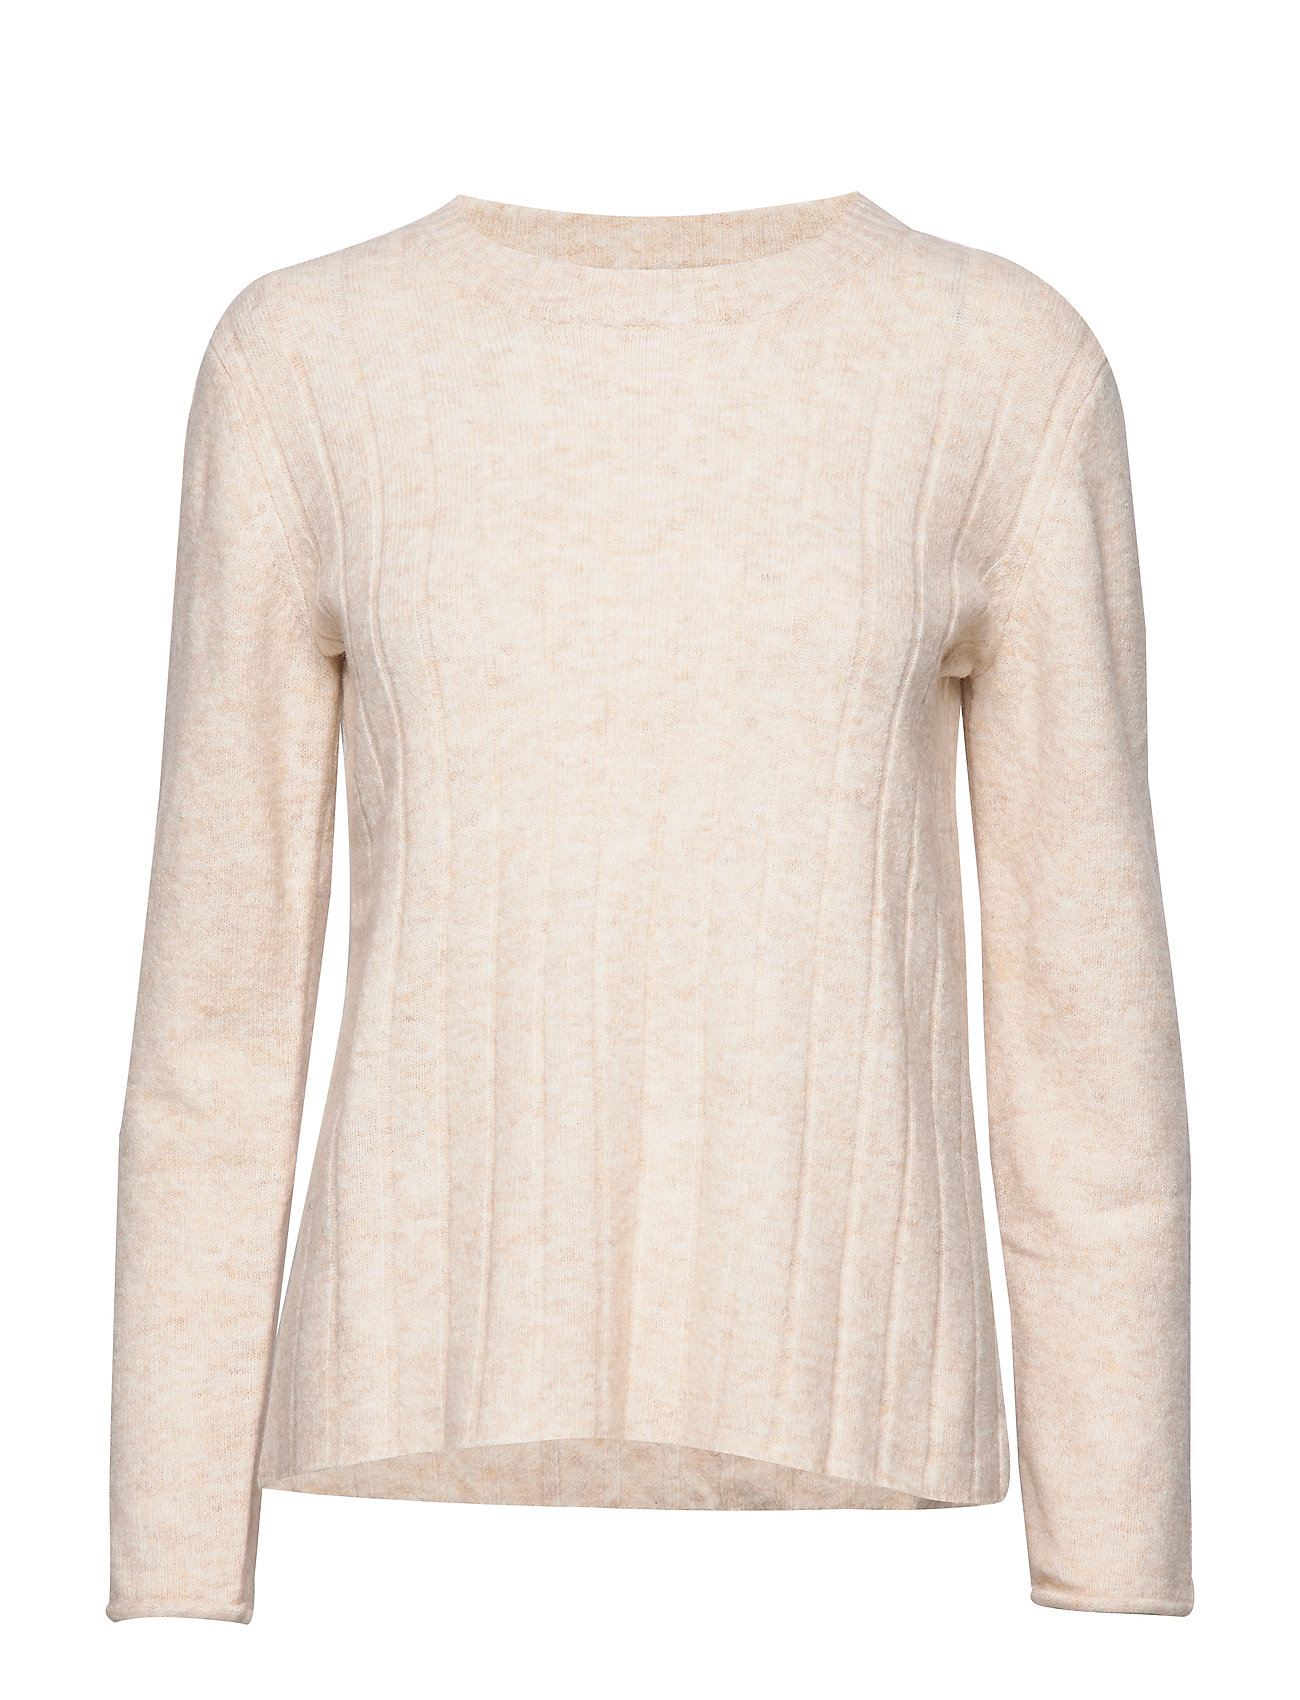 Soft Rebels Claire O-neck Knit - BLEACHED SAND